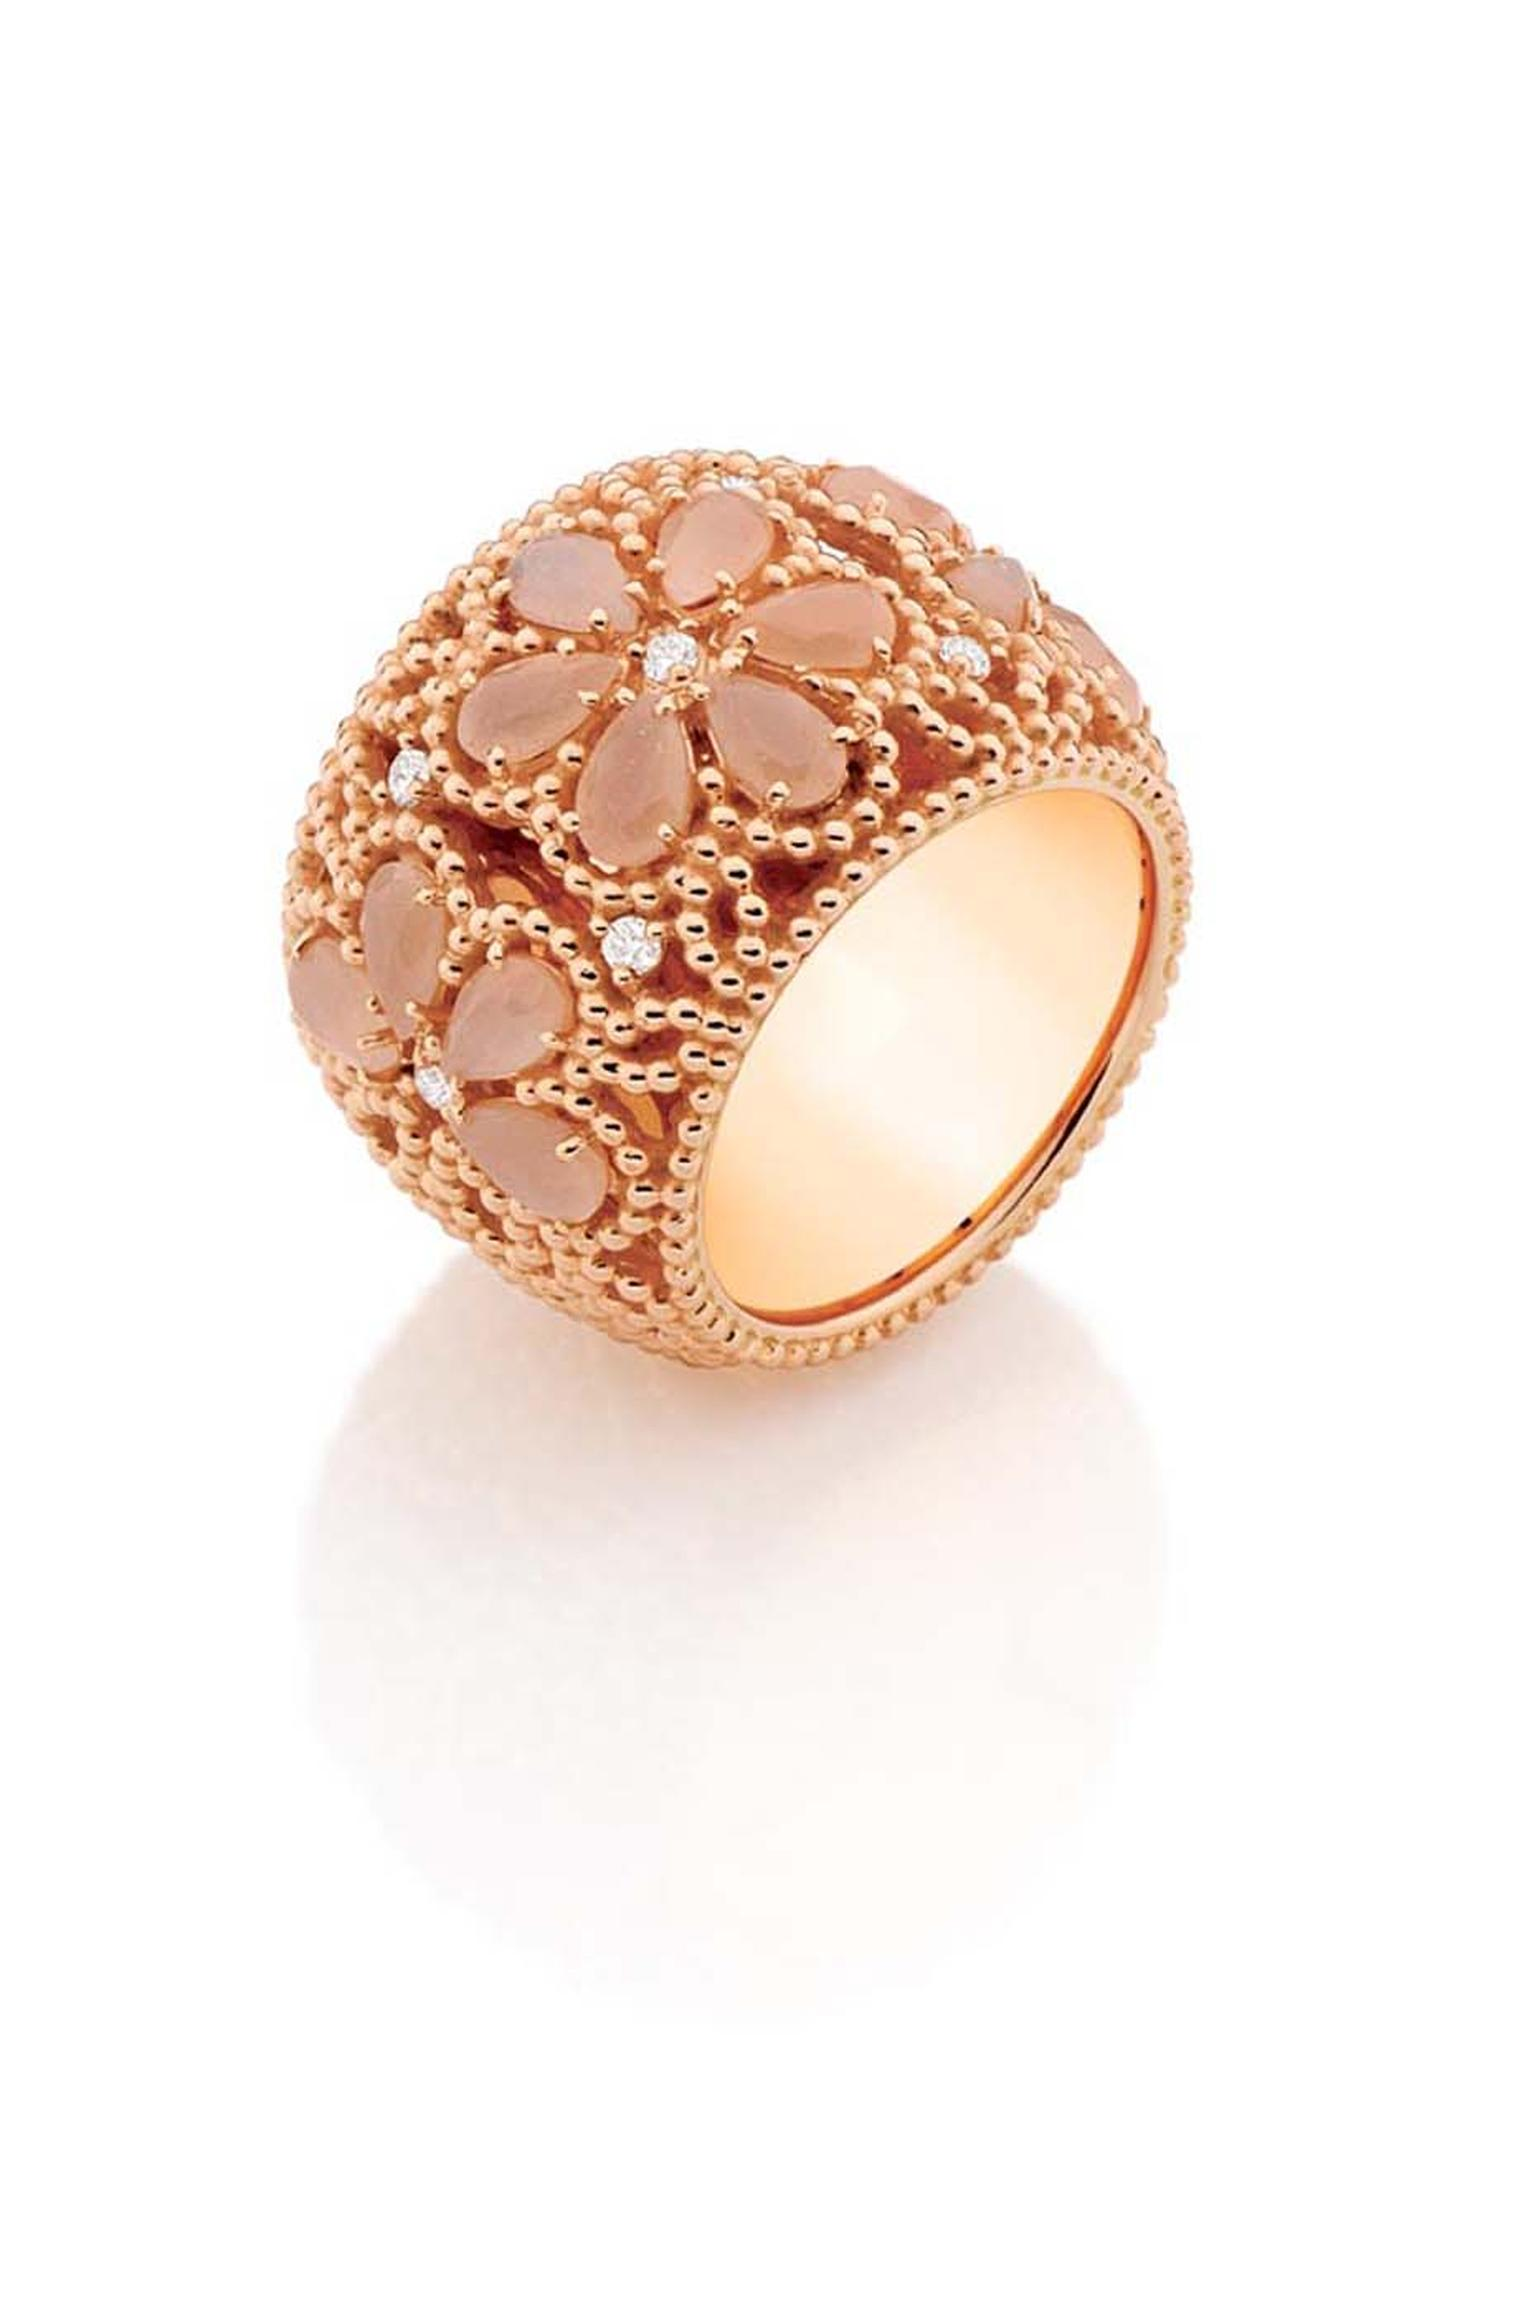 Carla Amorim rose gold Ibirapuera ring with peach moonstone and white diamonds.